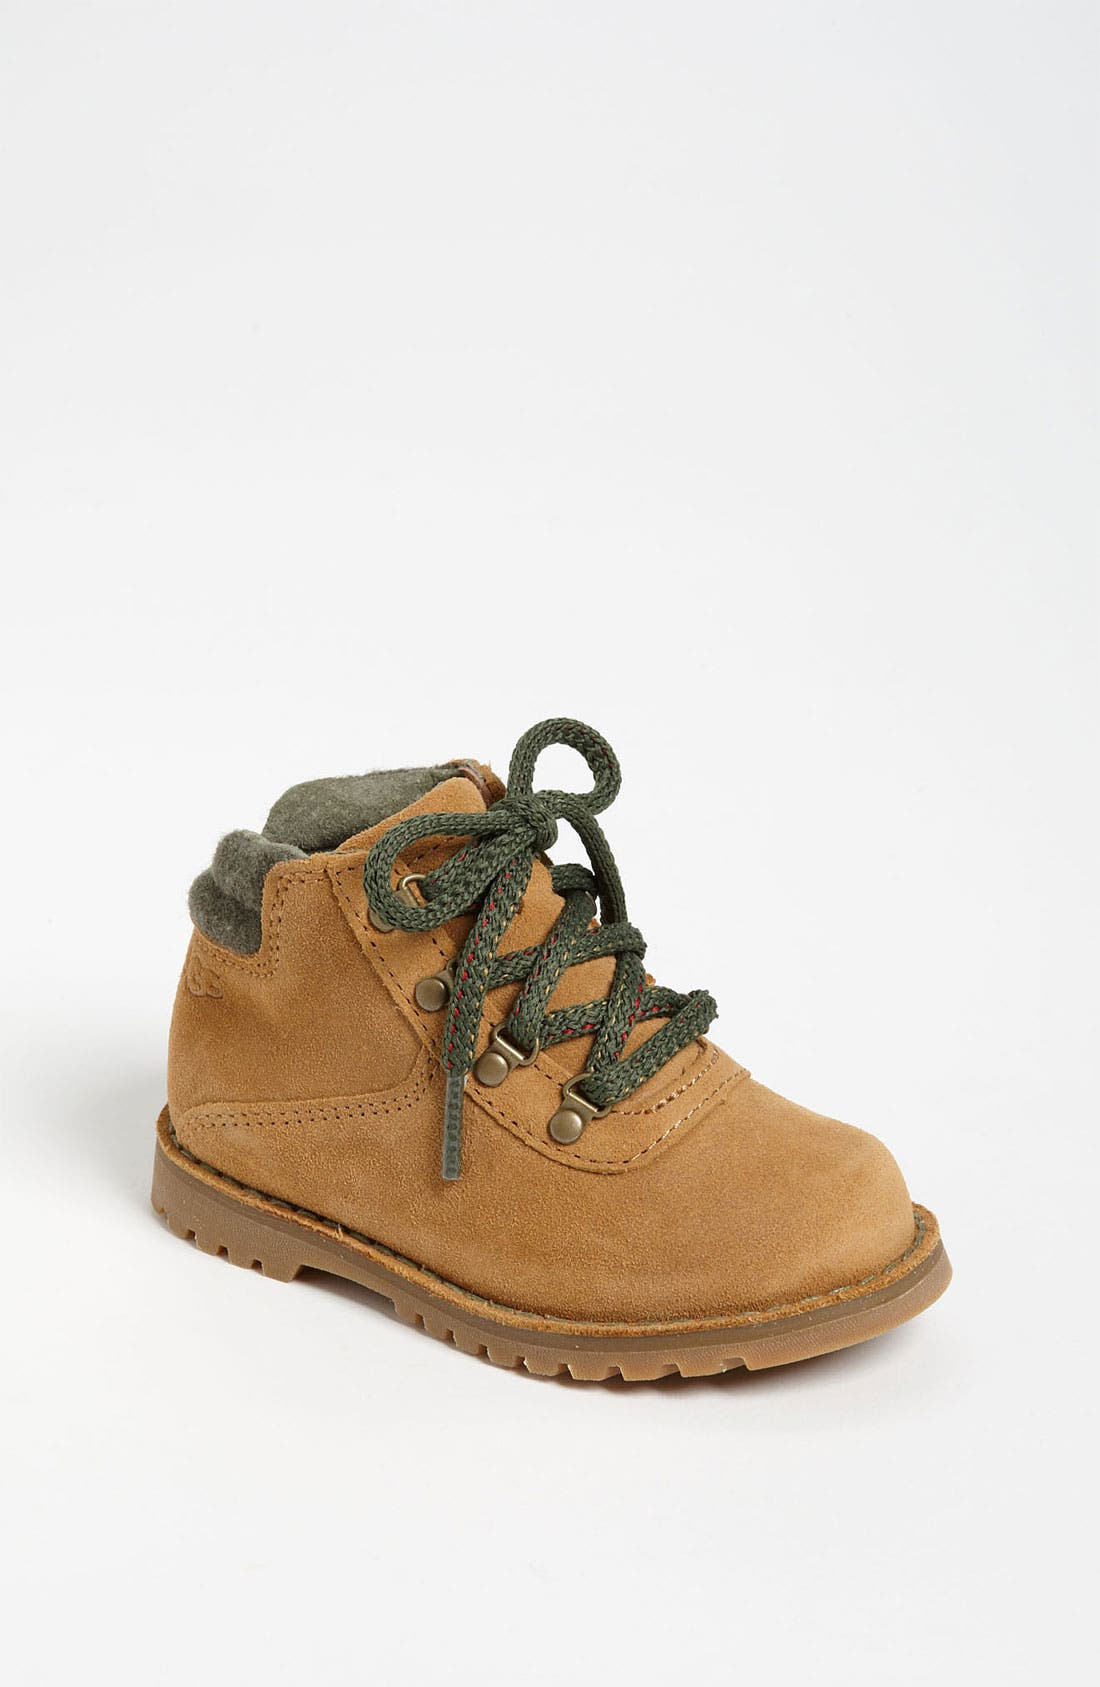 Alternate Image 1 Selected - UGG® Australia 'Payson' Boot (Walker & Toddler)